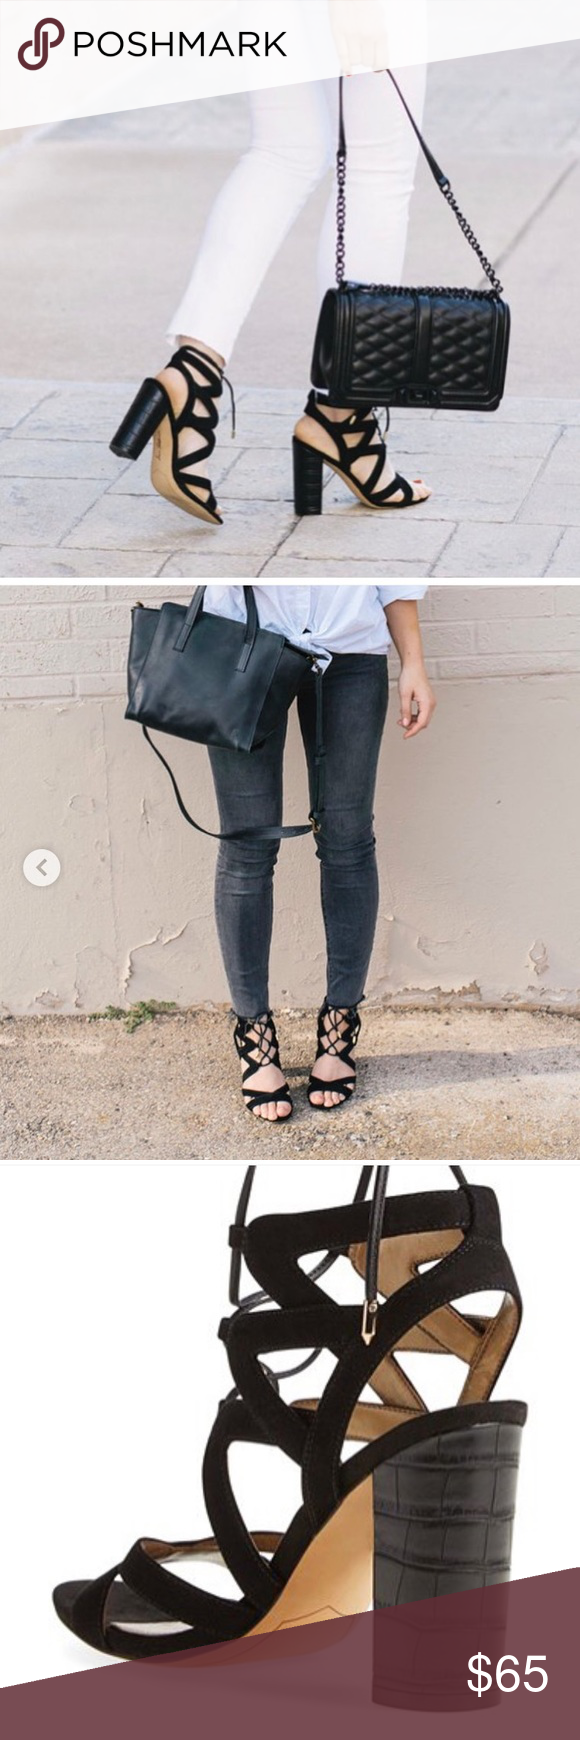 d0517bfd4fc Sam Edelman Yardley lace-up in black sandals Sam Edelman Yardley lace-up  sandals. Leather or suede upper. Lace-up design. Open-toe